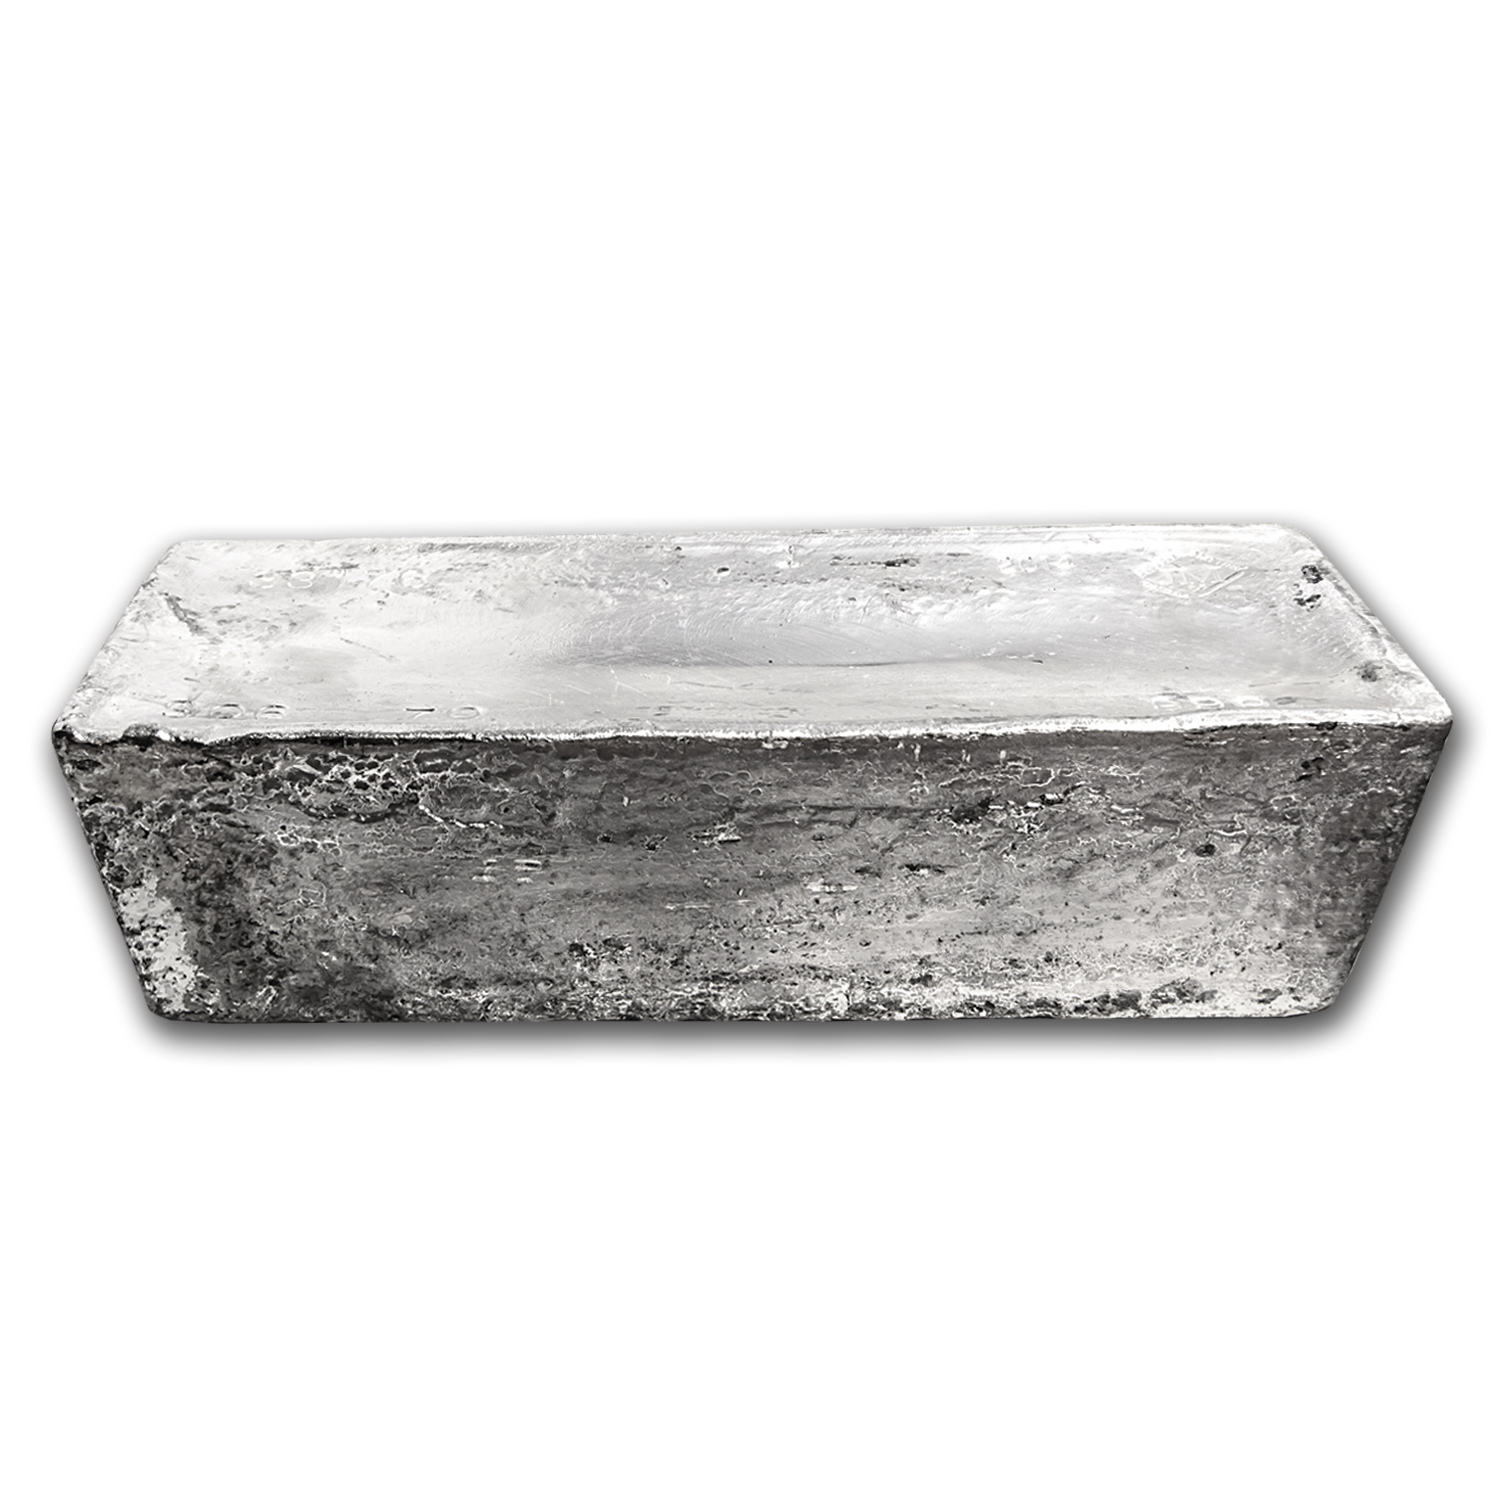 963.27 oz Silver Bar - OPM (#10-2506)